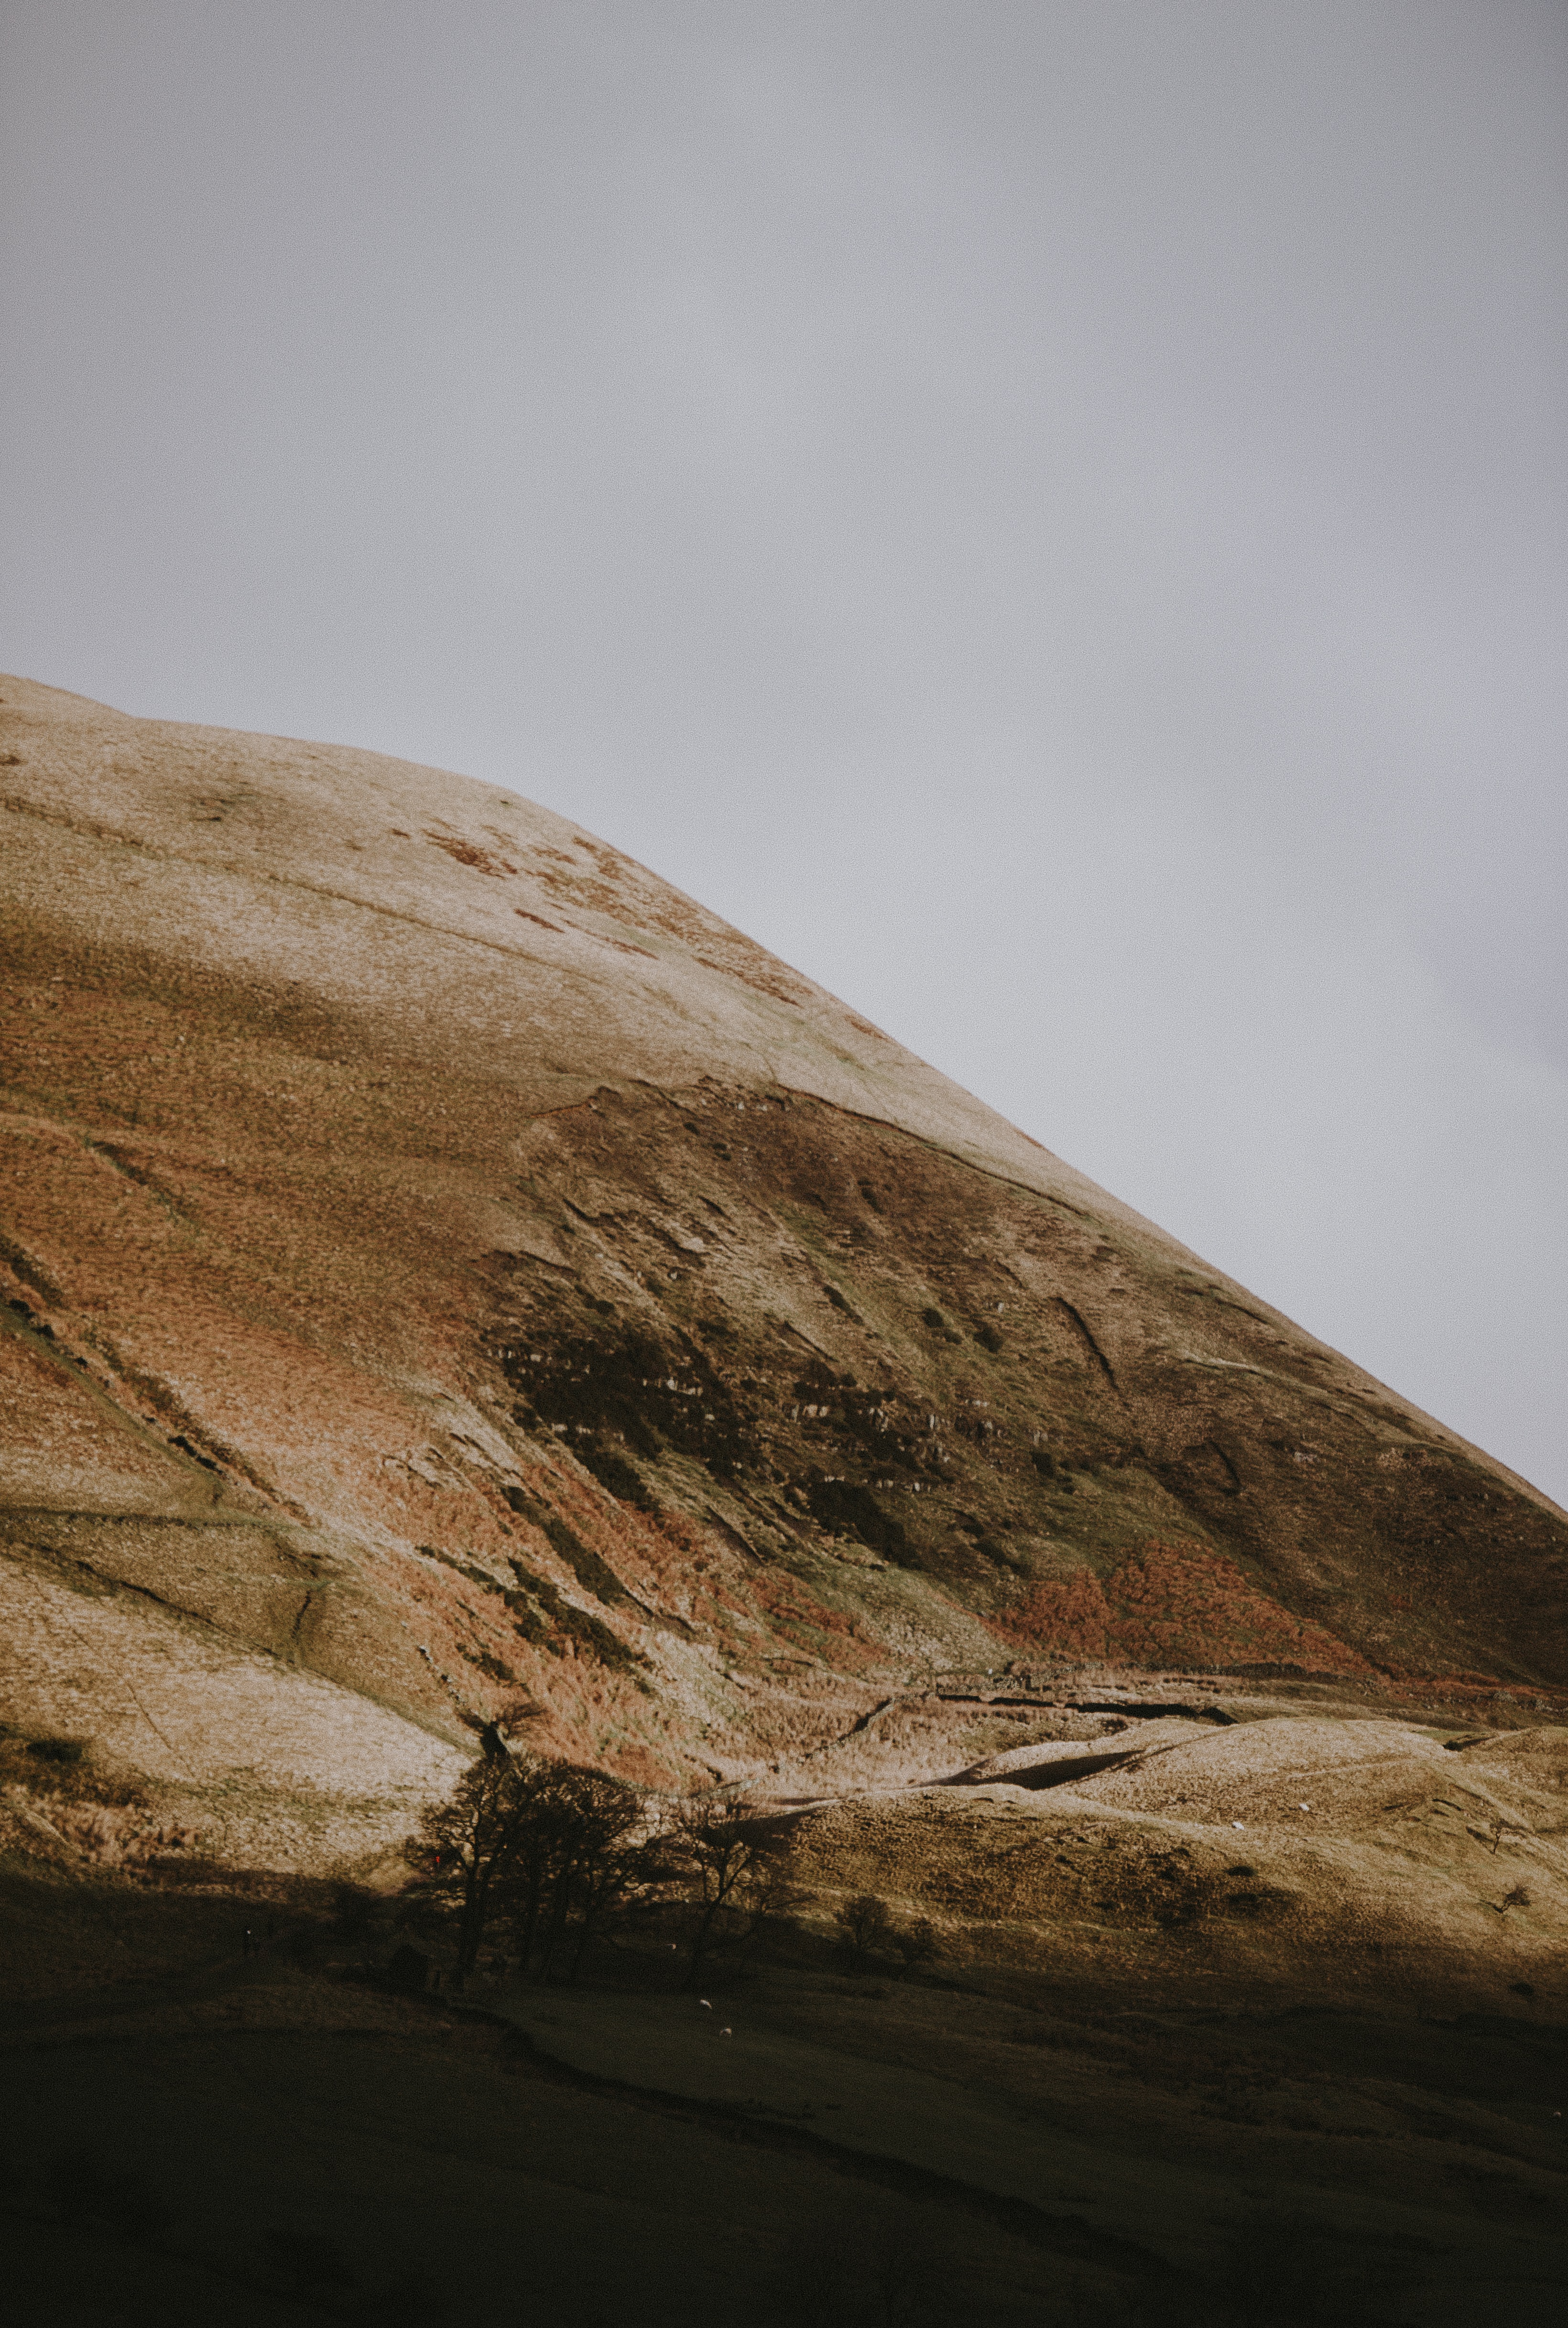 photo of brown mountain under gray clouds